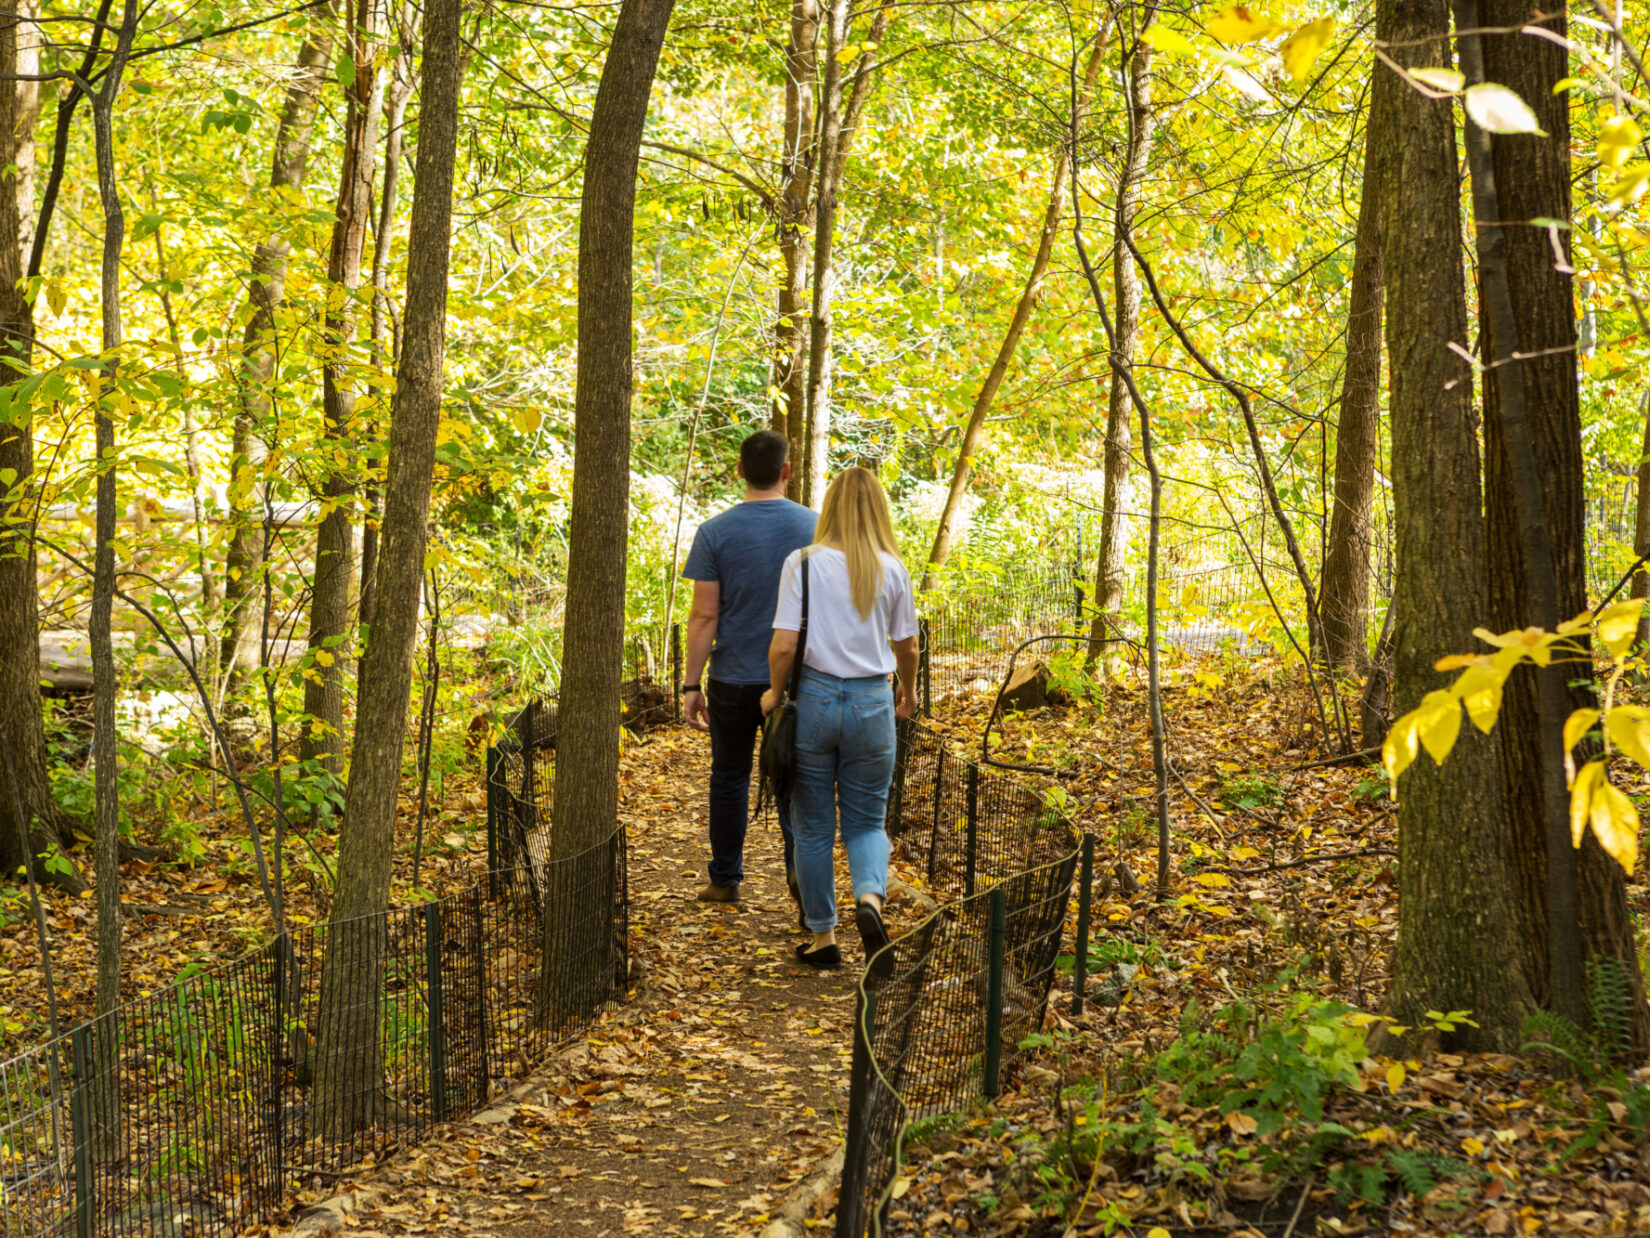 A couple walking down a leaf-strewn path in an autumnal North Woods